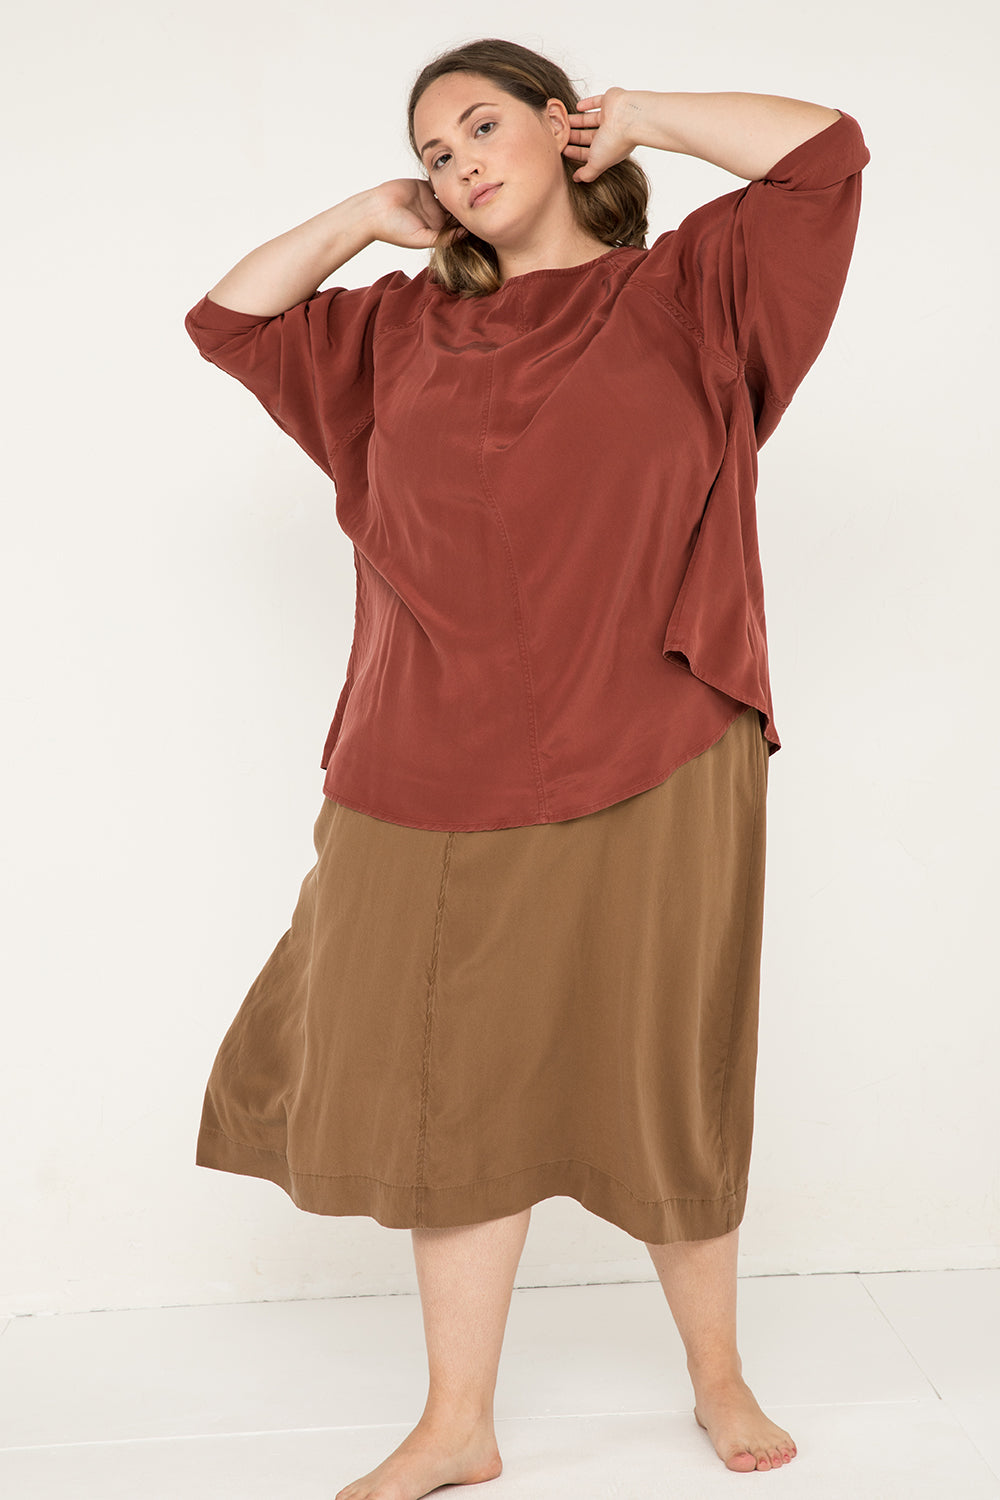 Artist Smock in Silk Crepe Rust - Sam-OSP2